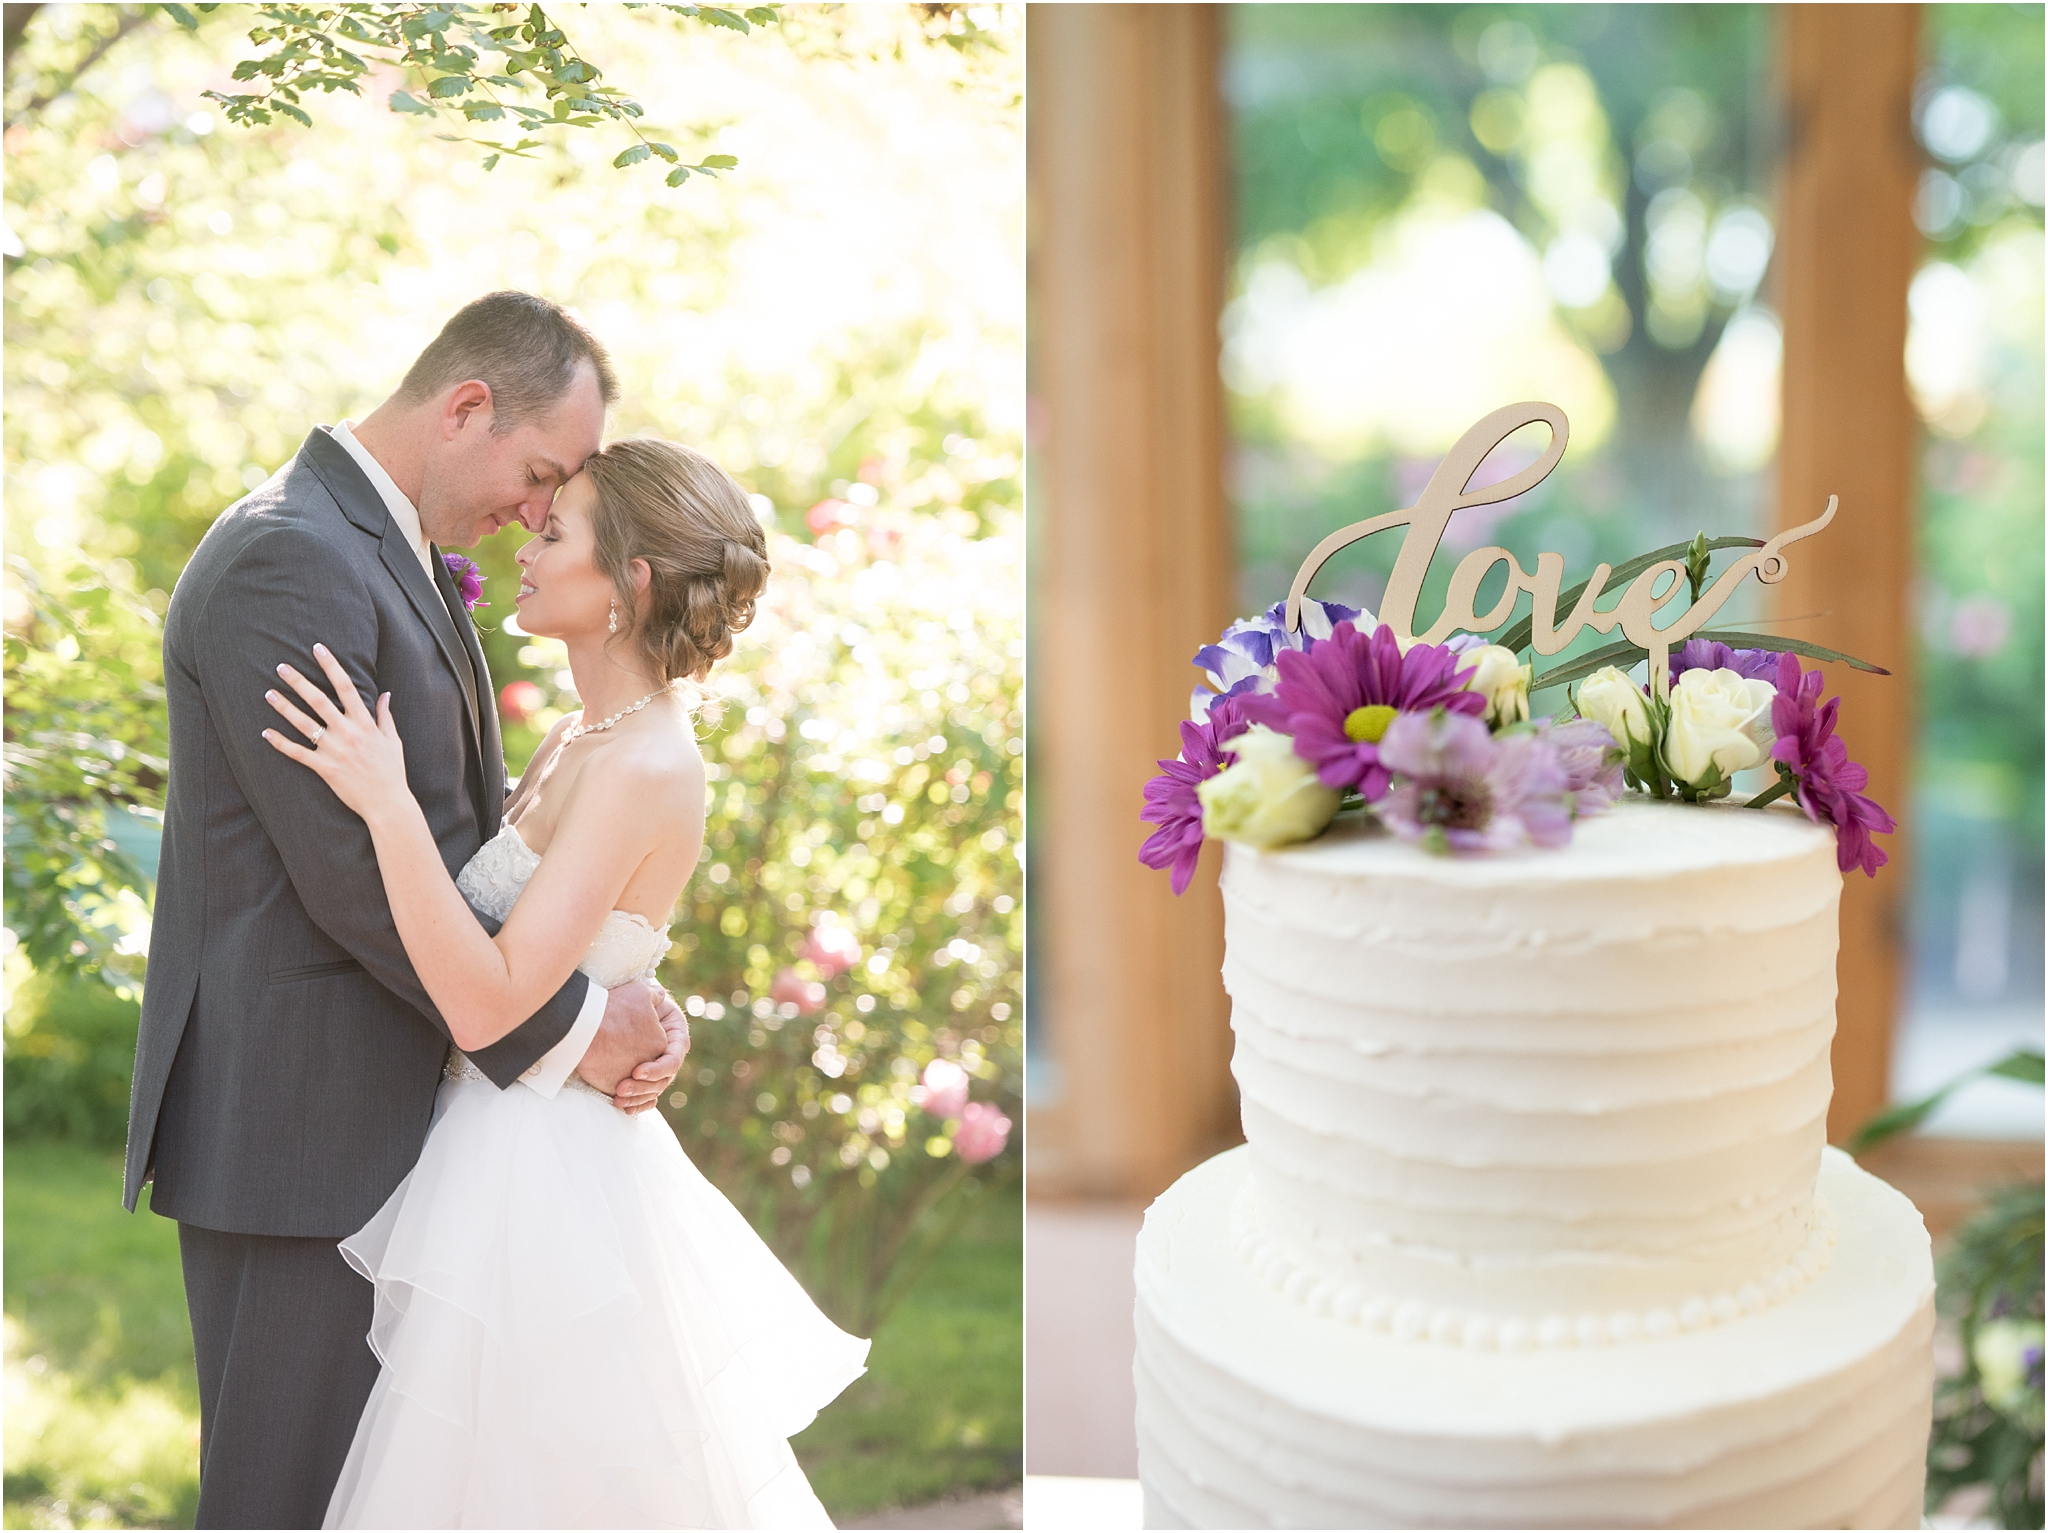 kayla kitts photography - new mexico wedding photographer - albuquerque botanic gardens - hotel albuquerque-casa de suenos_0240.jpg